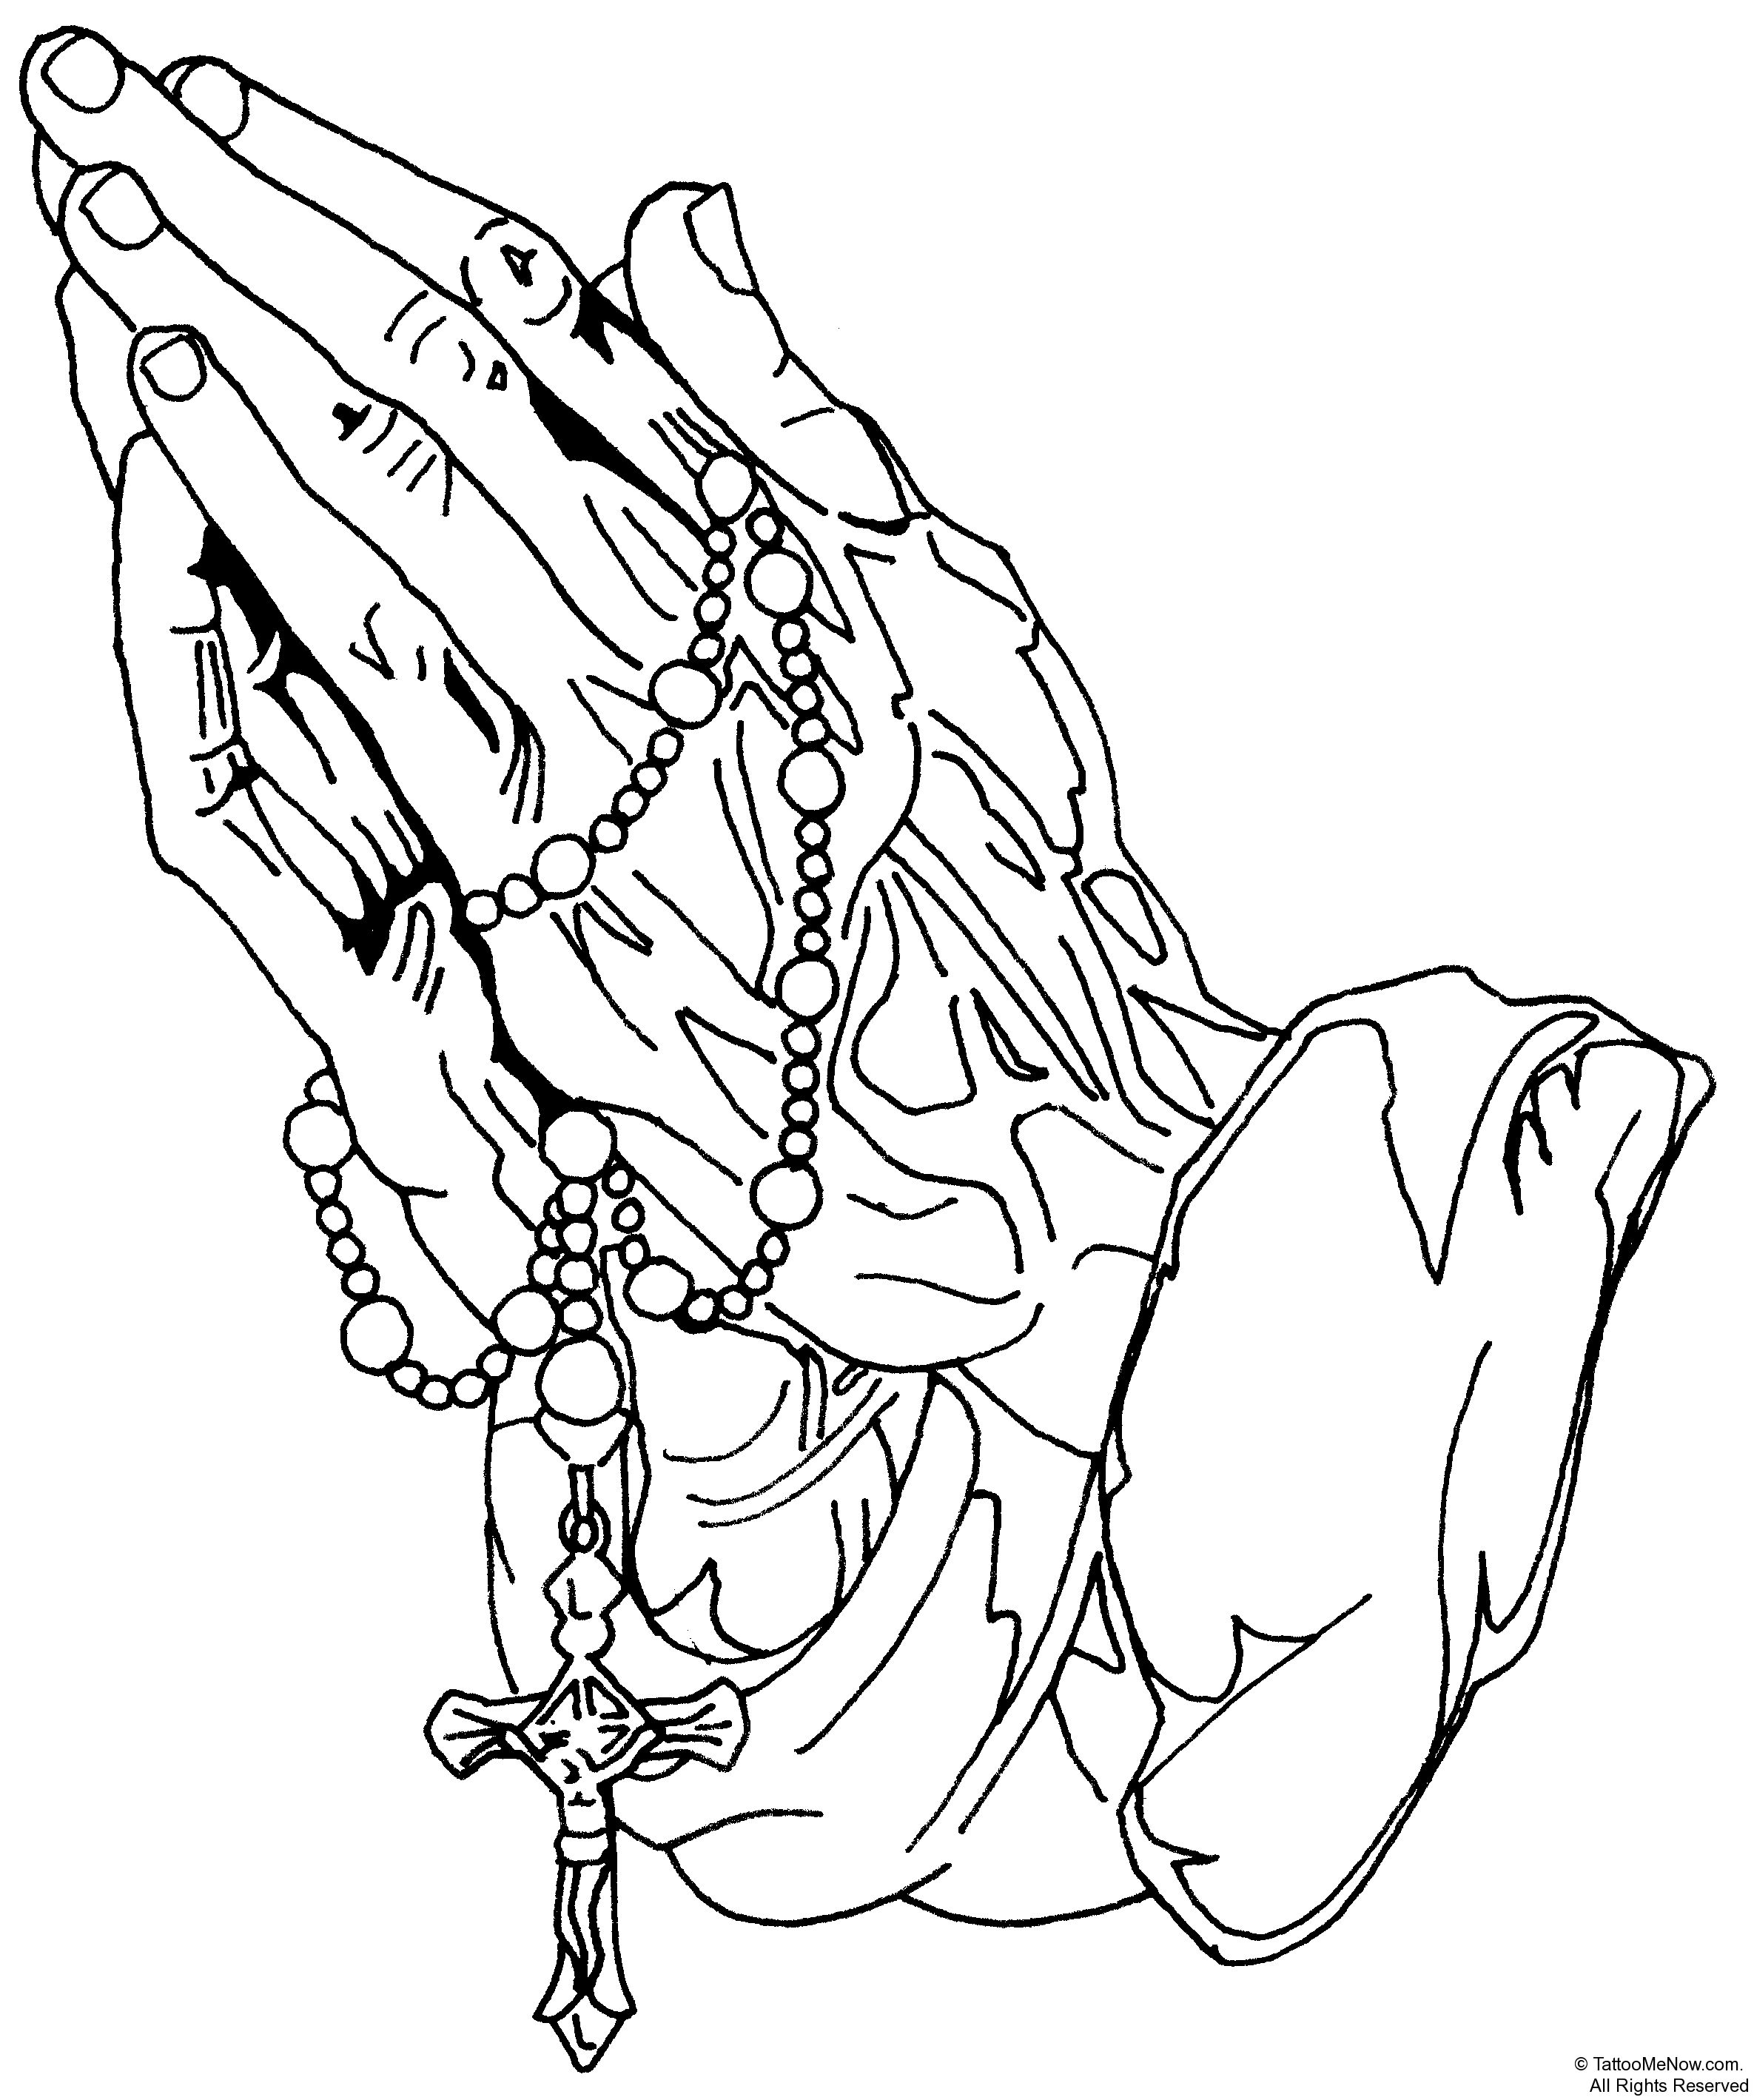 praying hands coloring page pictures and tattoo design imagesphotoswallpapers - Jesus Praying Hands Coloring Page